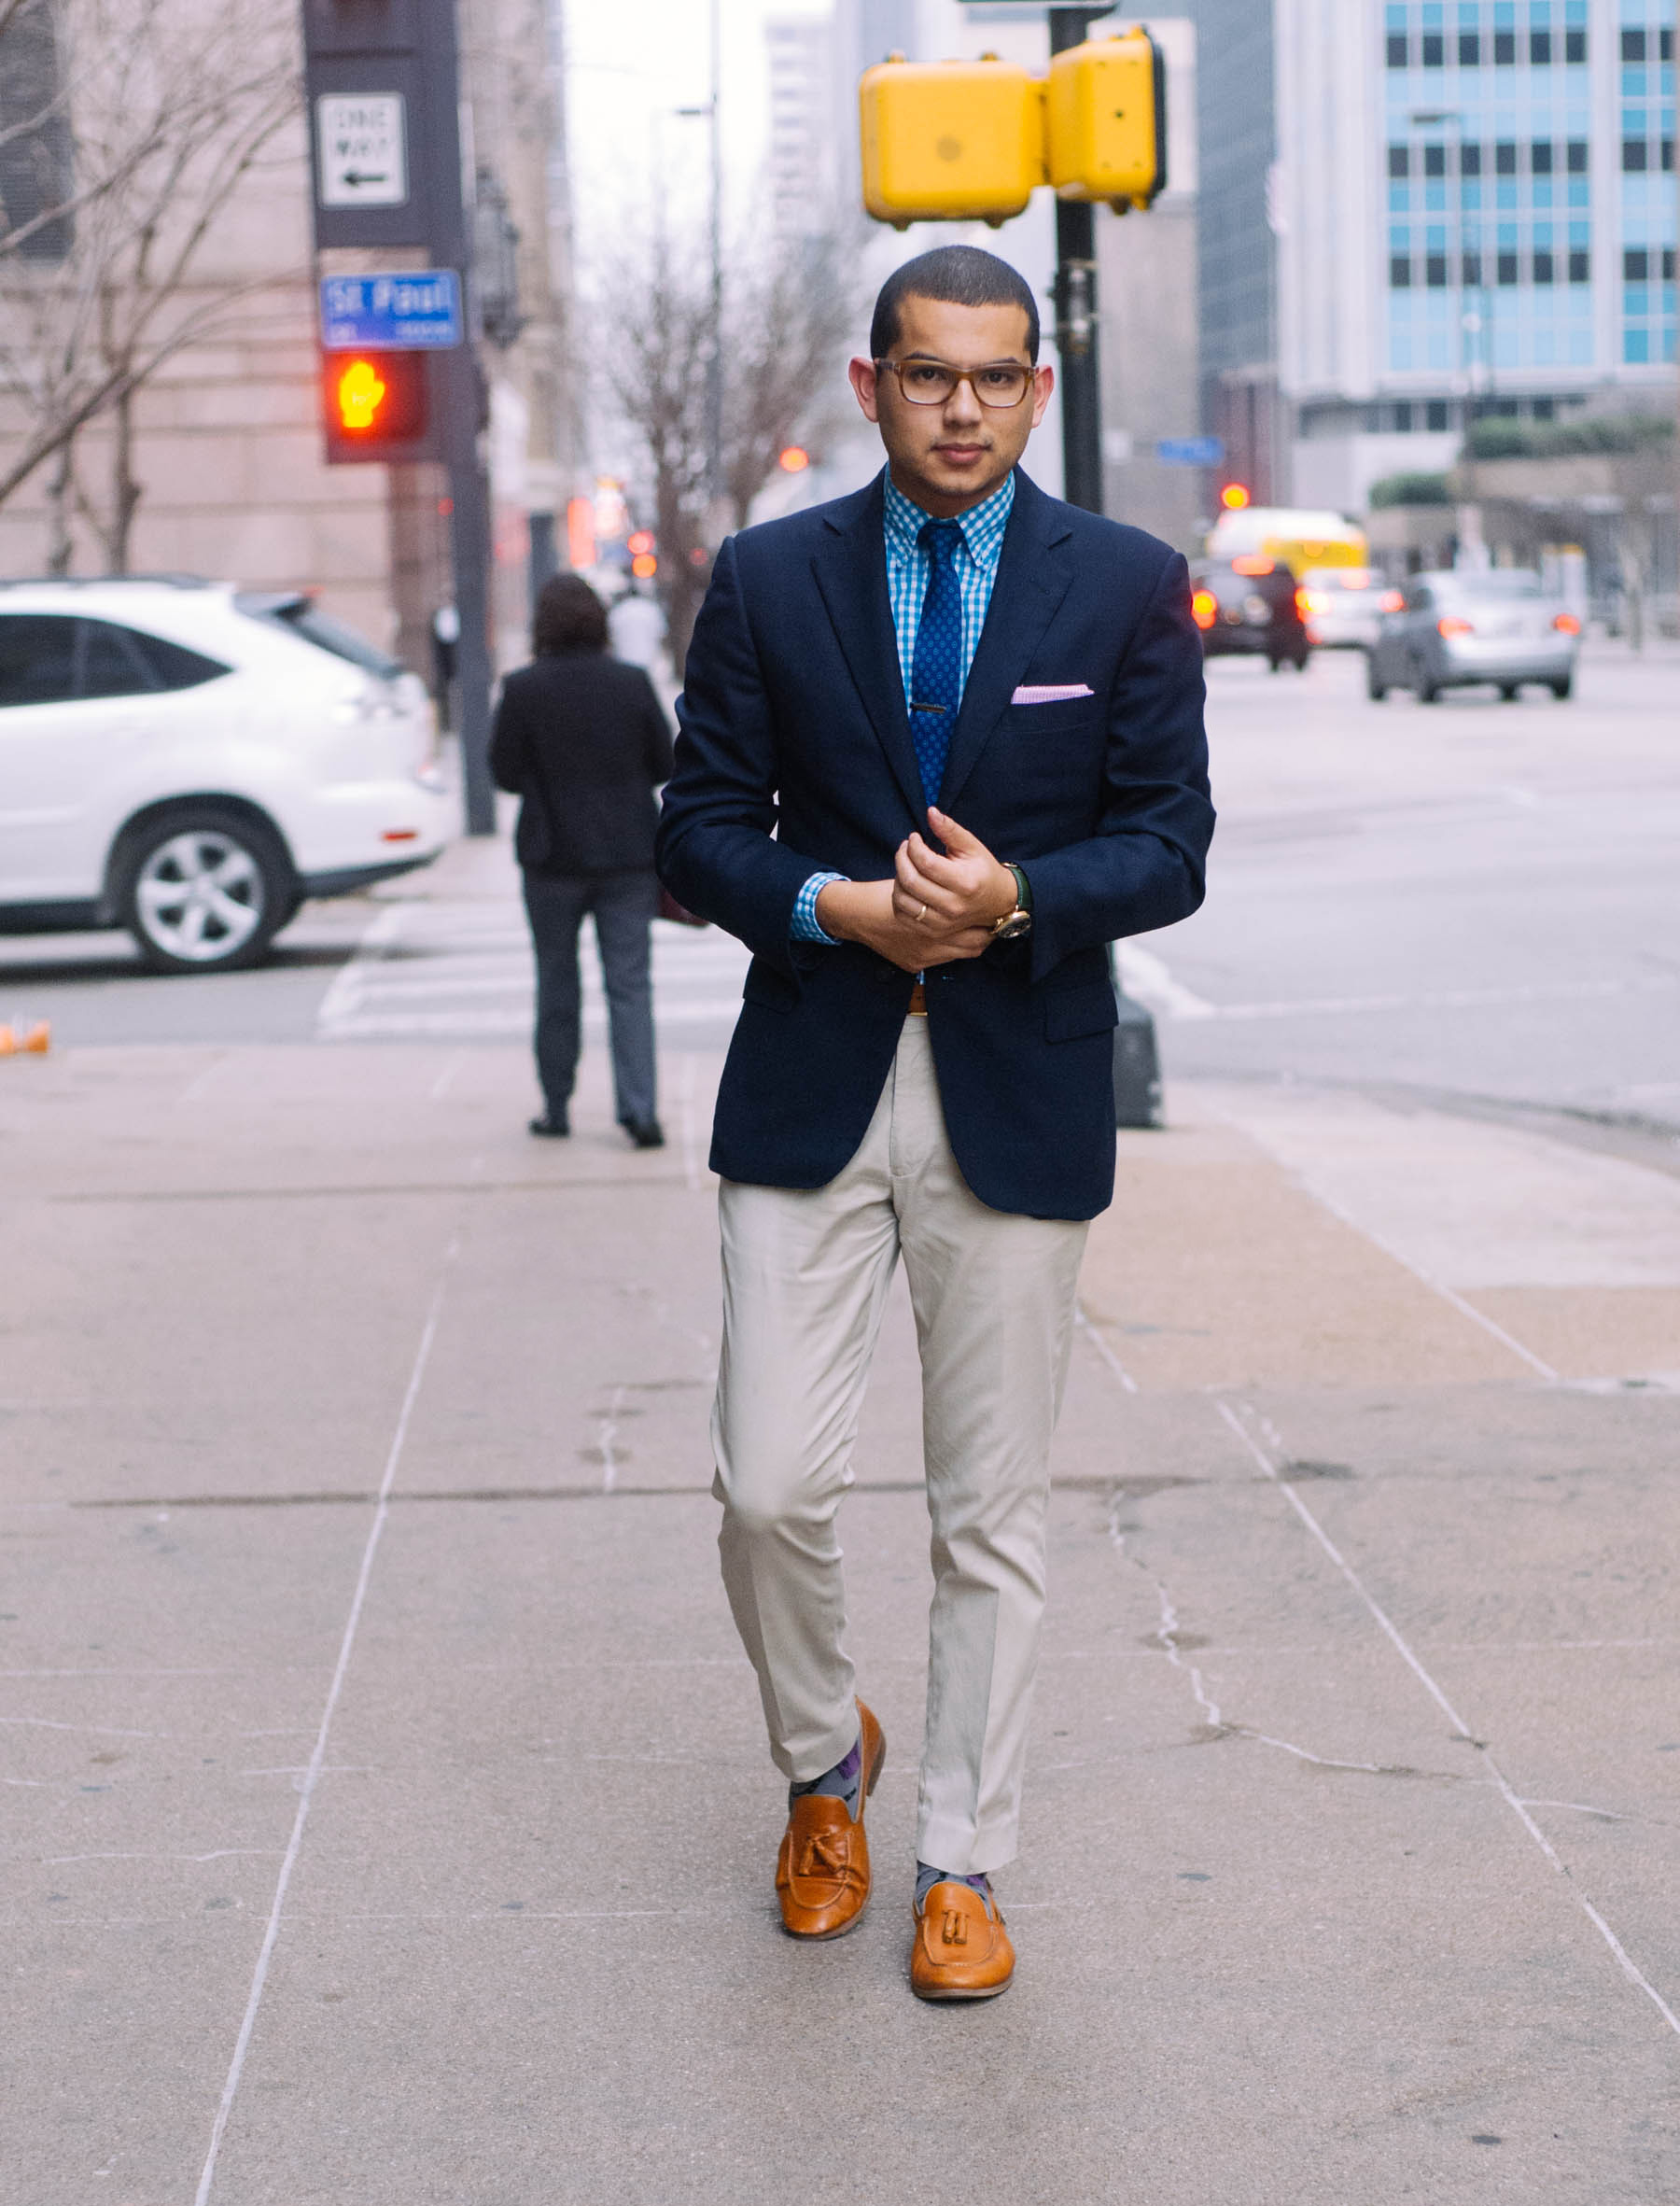 Jacket:  Ermenegildo Zegna  | Pants:  J.Crew  | Shirt: J.Crew (similar  here ) | Tie: J.Crew (similar  here ) | Tie Clip: The Tie Bar (also love  this one ) | Shoes: Mr. B's (similar  here ) | Glasses:  Tom Ford  | Watch:  Shinola  | Pocket Square: Brooks Brothers (exact same thing  here )